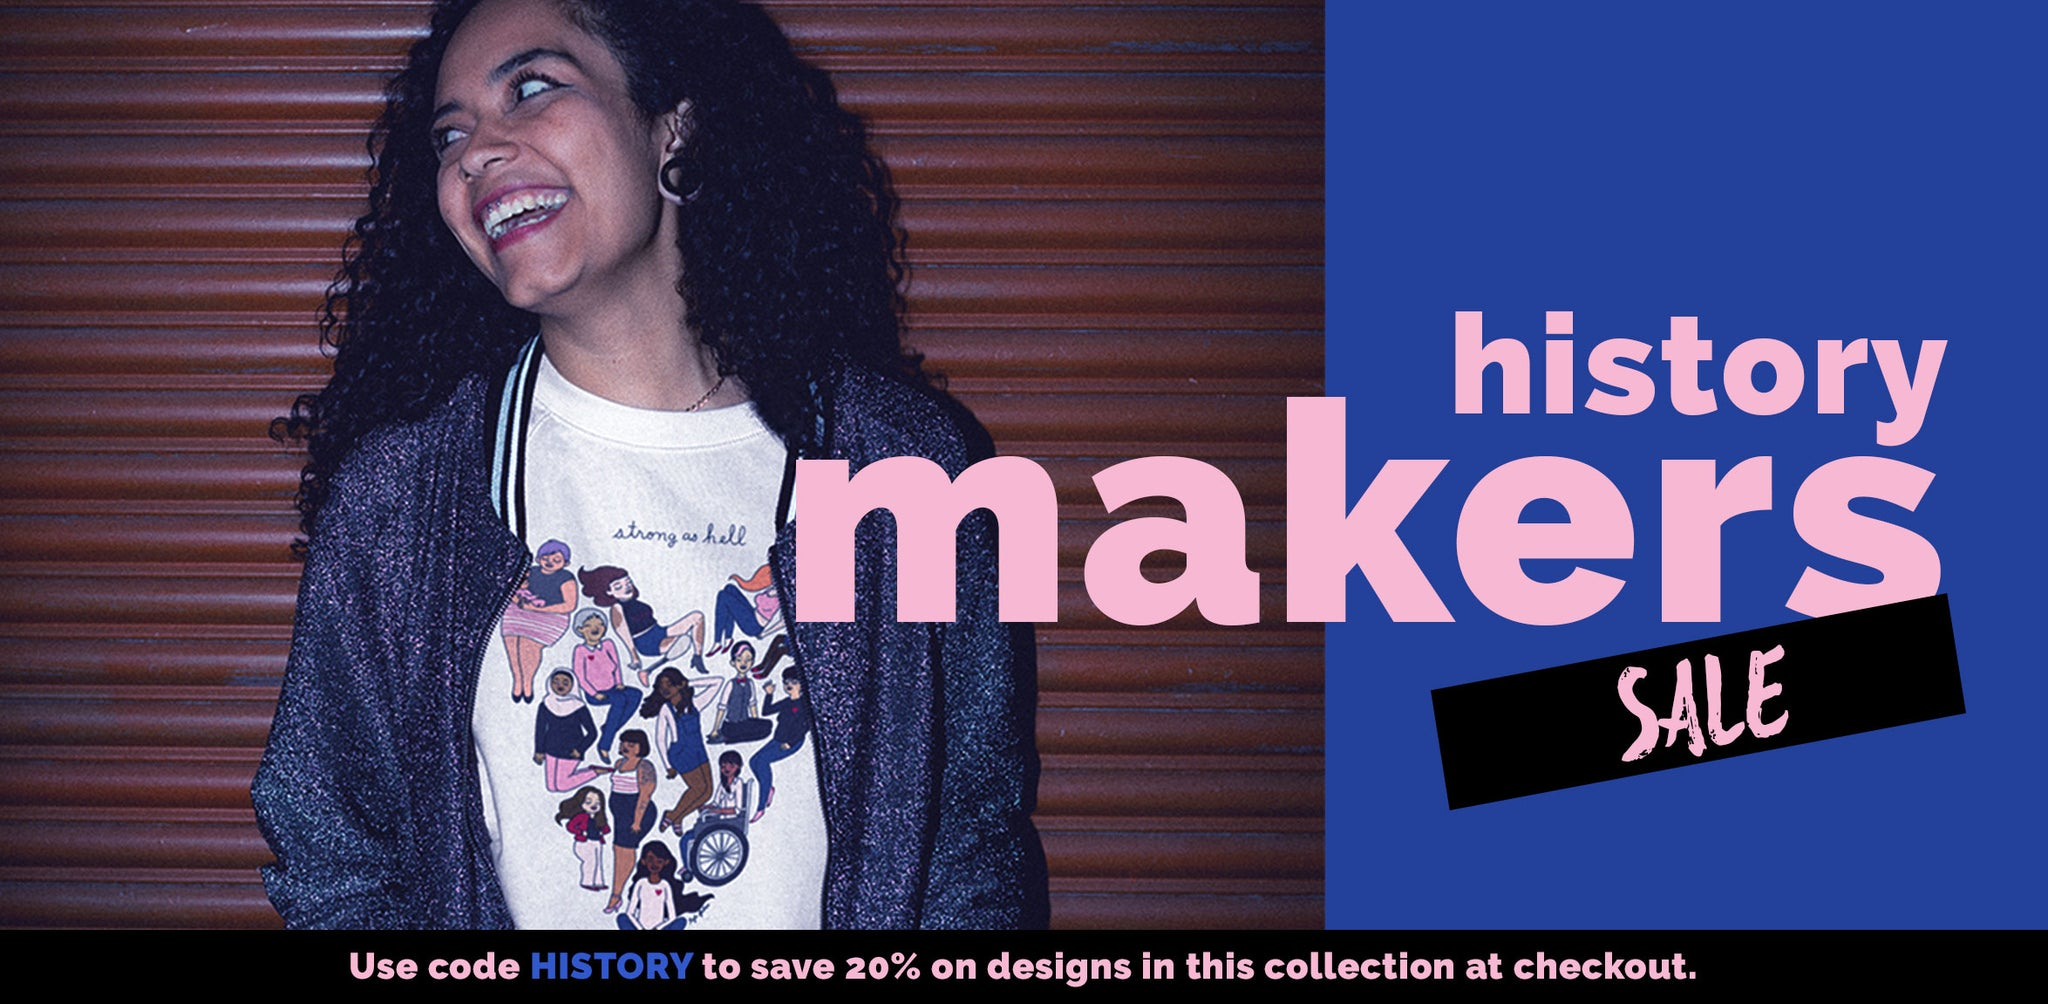 Welcome to our History Makers Sale! All designs in this collection are 20% off for the rest of the month. Use code HISTORY at check out for the discount.